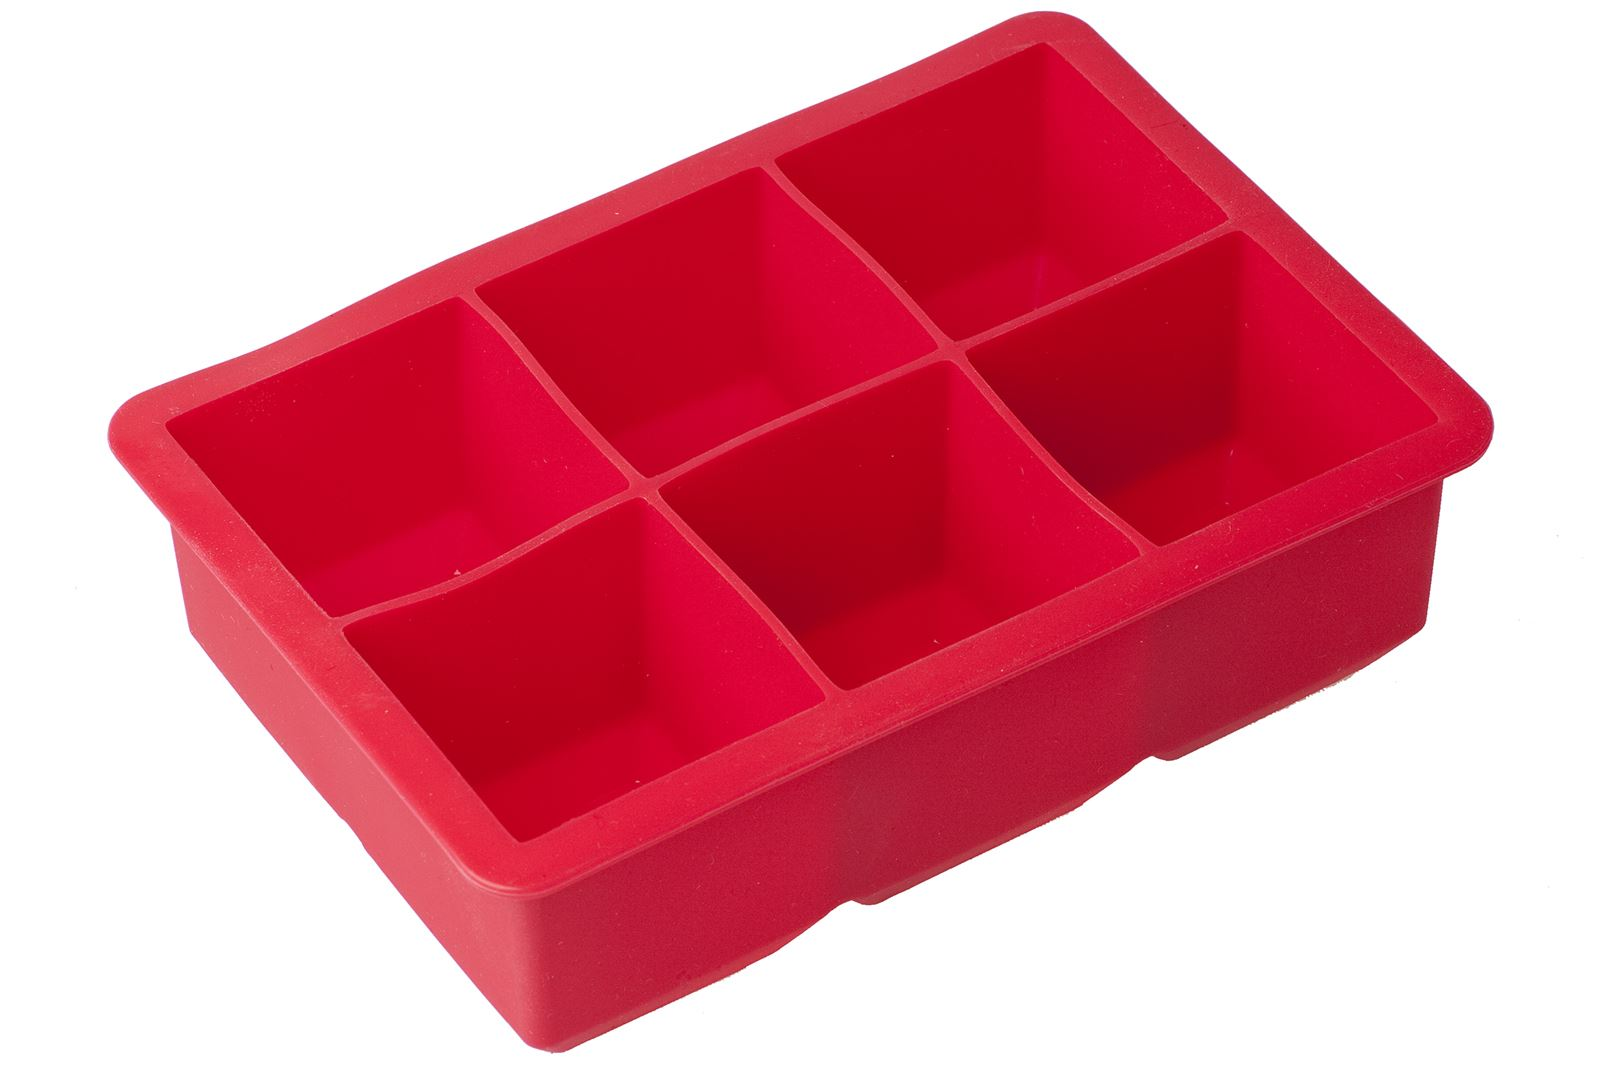 Silicone Ice Cube Tray Large Mould Mold Giant Ice Cubes Square UK